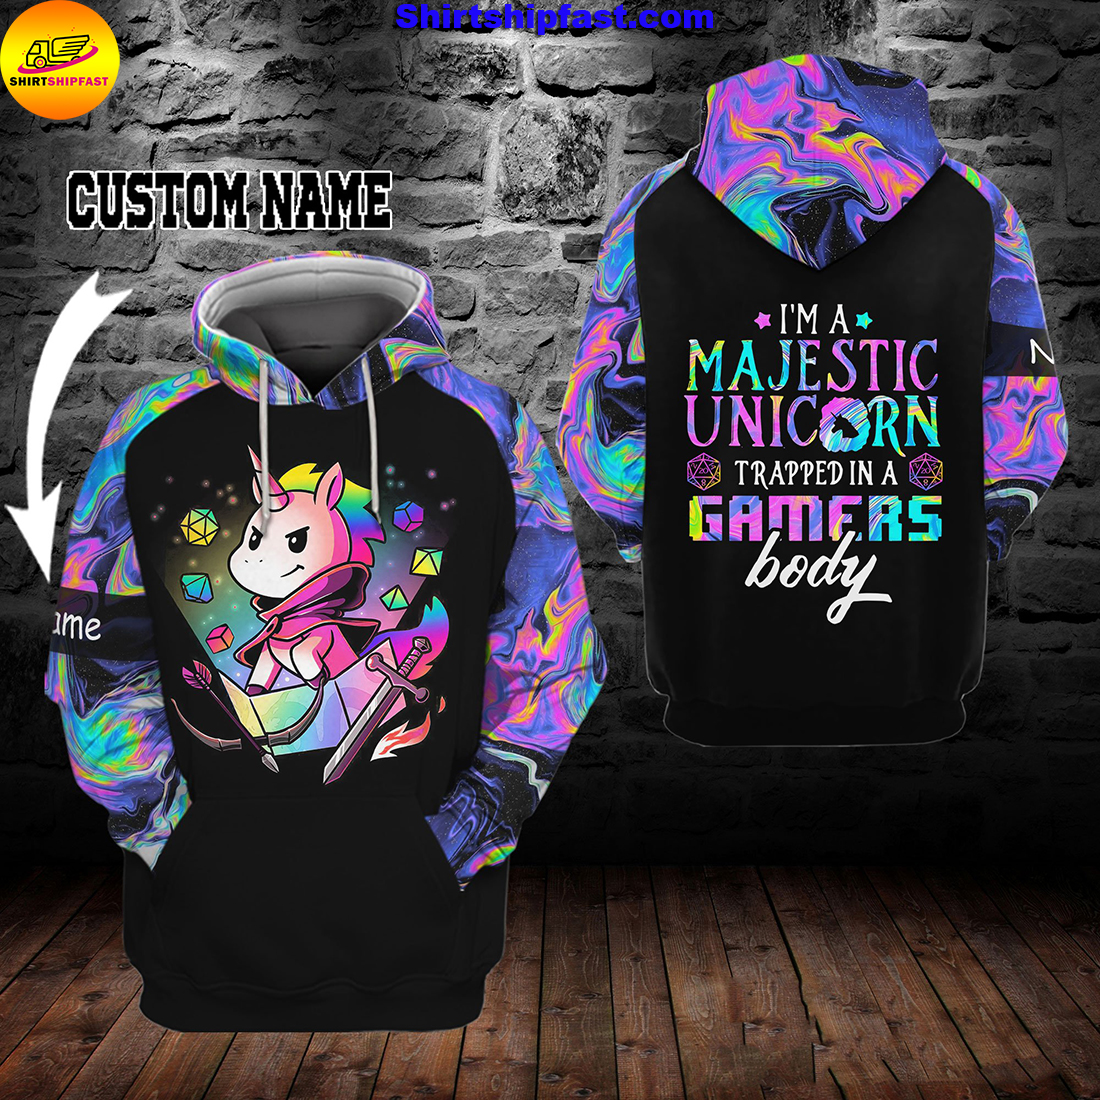 I'm a majestic unicorn trapped in a gamer's body custom name 3d hoodie and zip hoodie